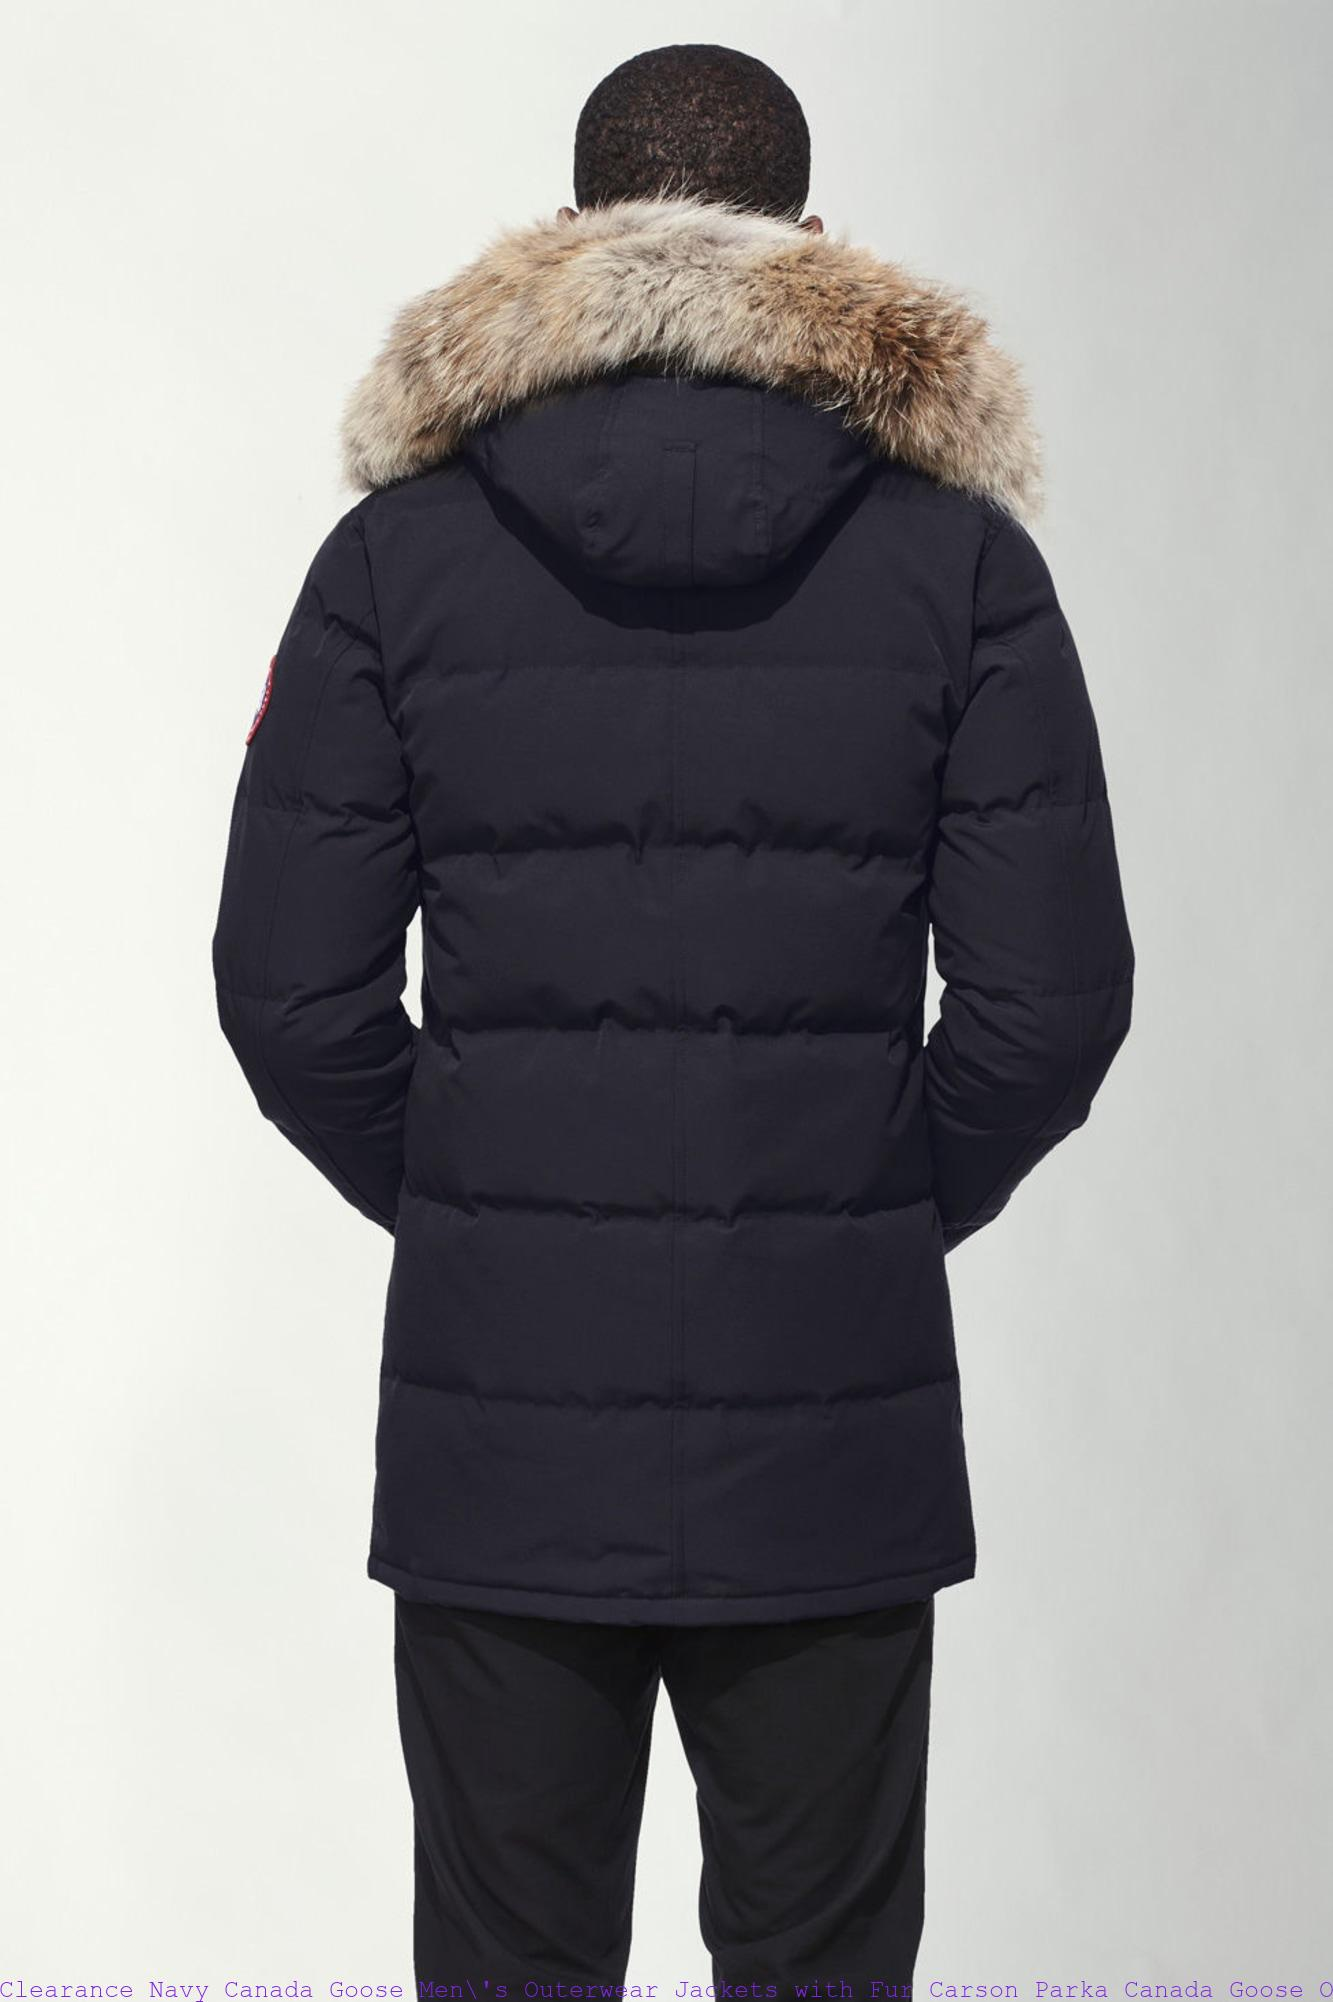 Clearance Navy Canada Goose Men  s Outerwear Jackets with Fur Carson ... 8a49f4008